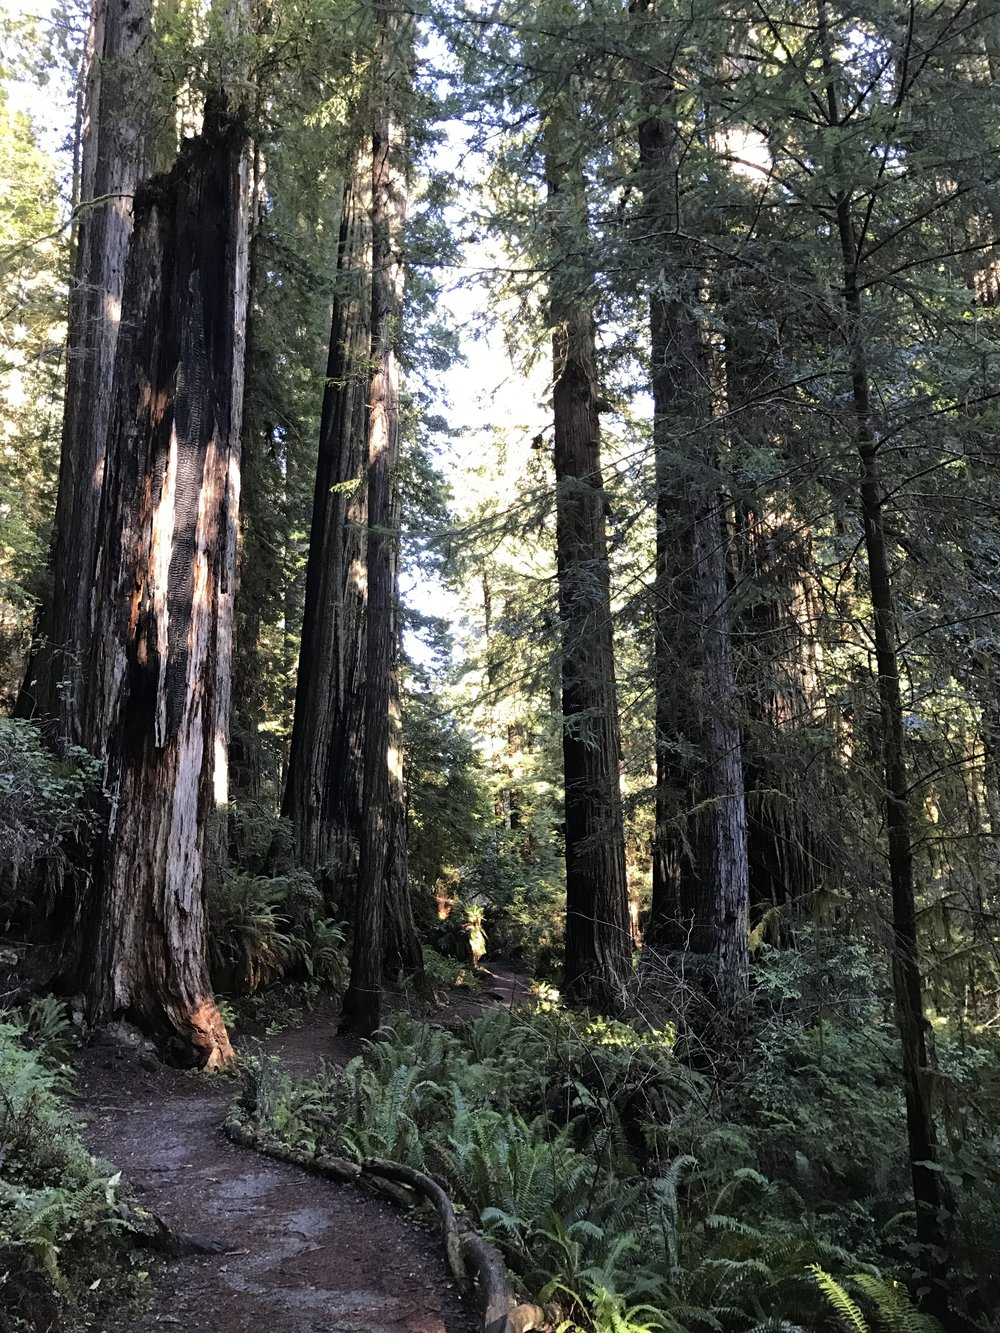 Prairie Creek Redwoods State Park in California